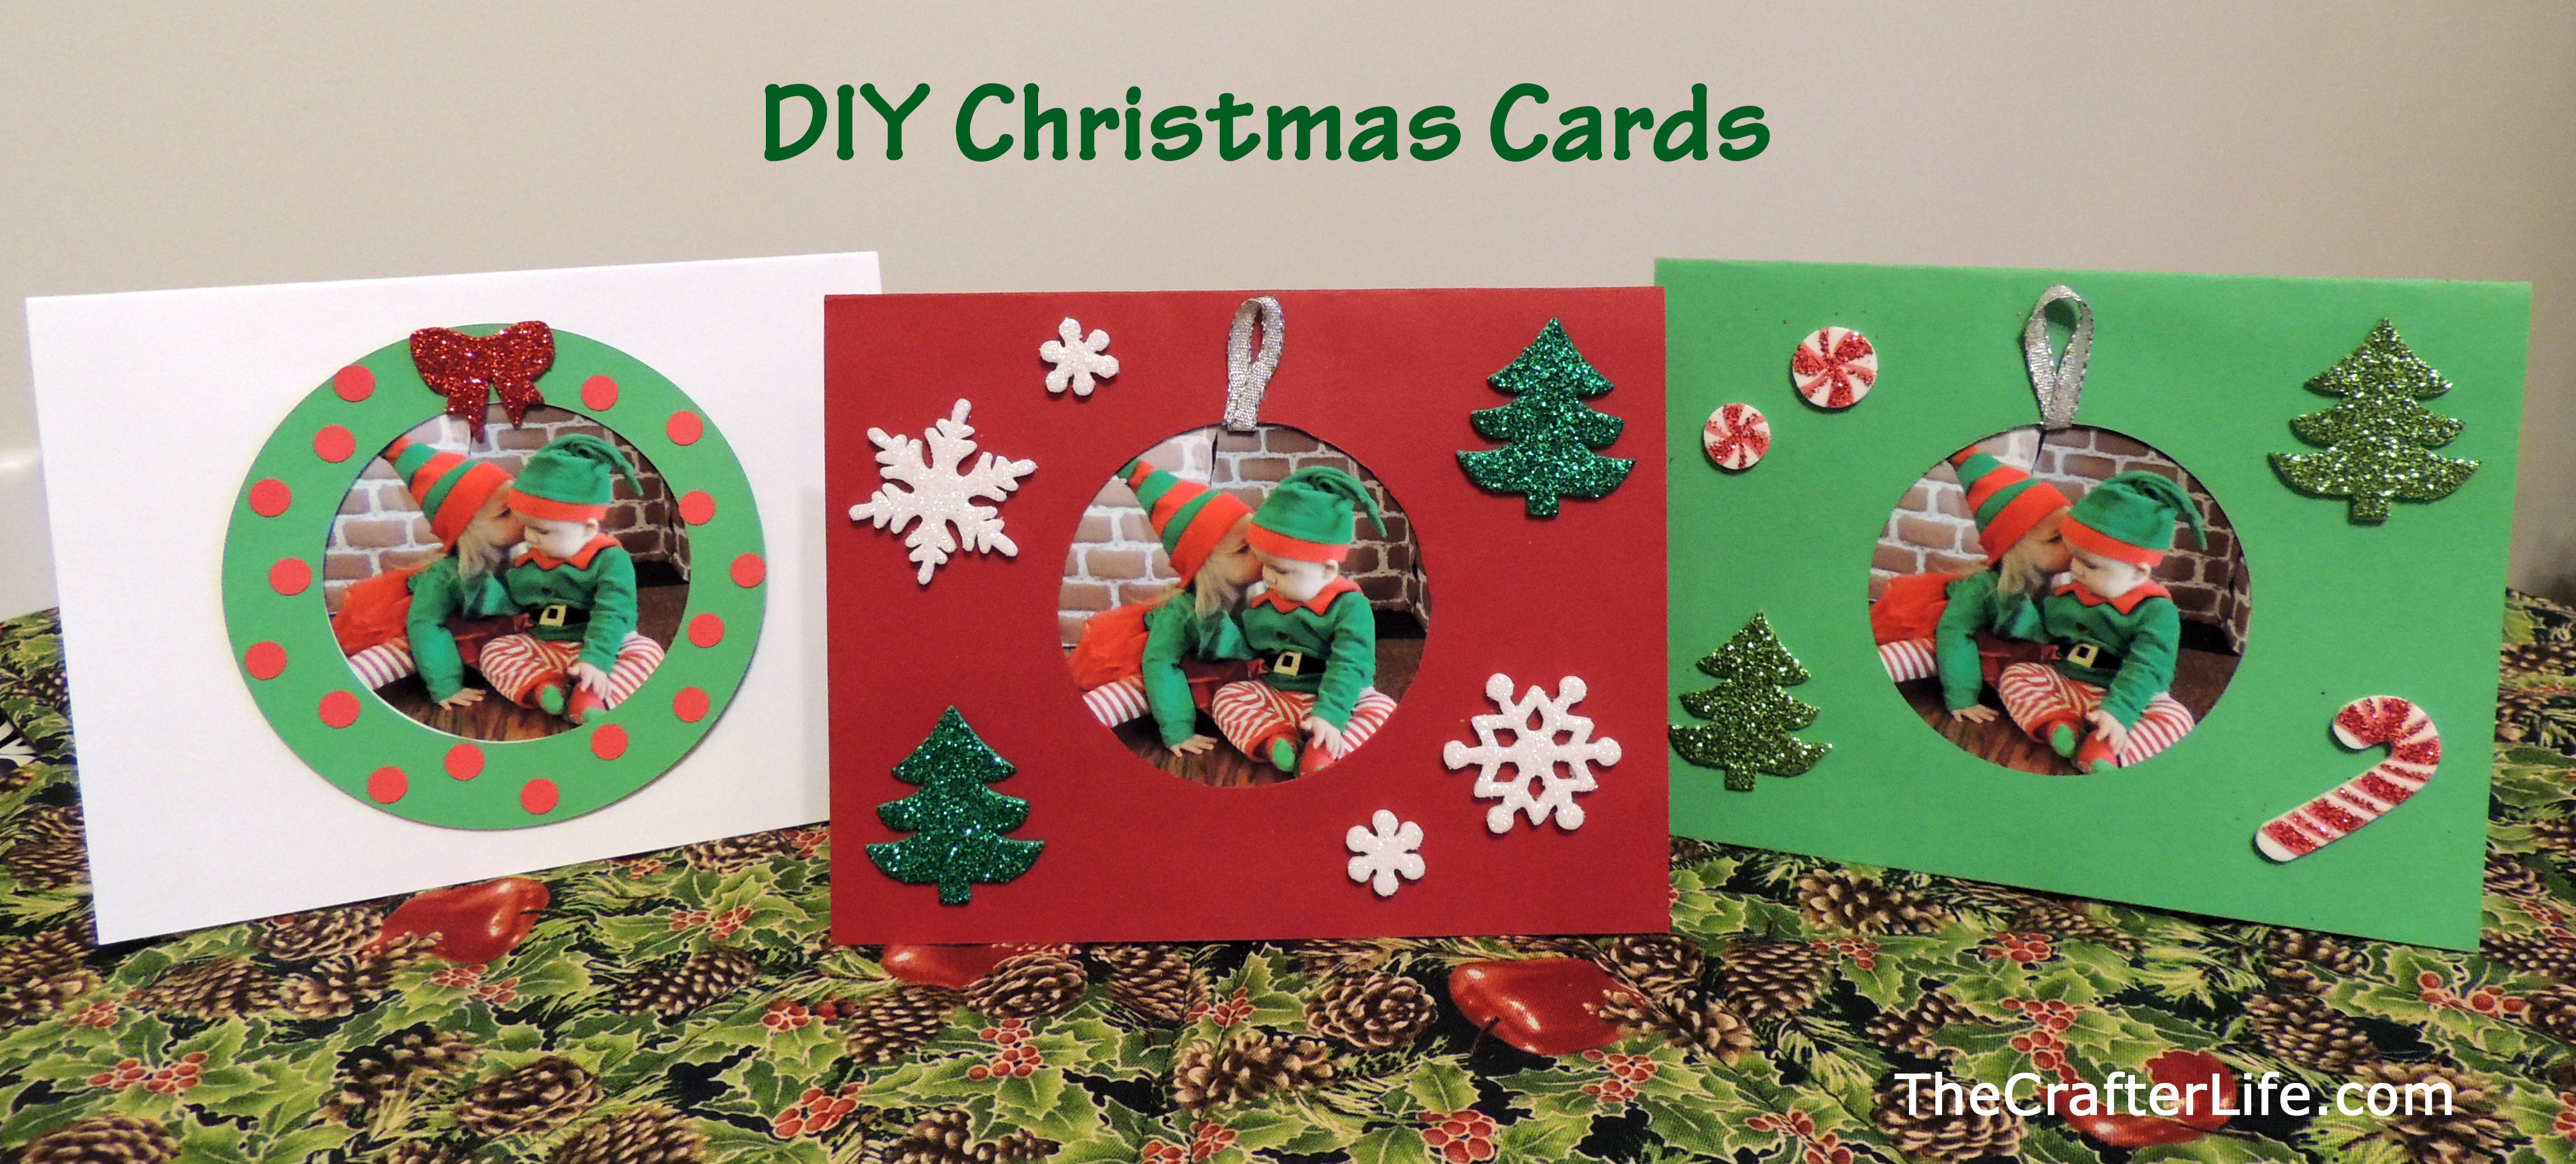 Best ideas about DIY Photo Christmas Cards . Save or Pin DIY Christmas Cards The Crafter Life Now.